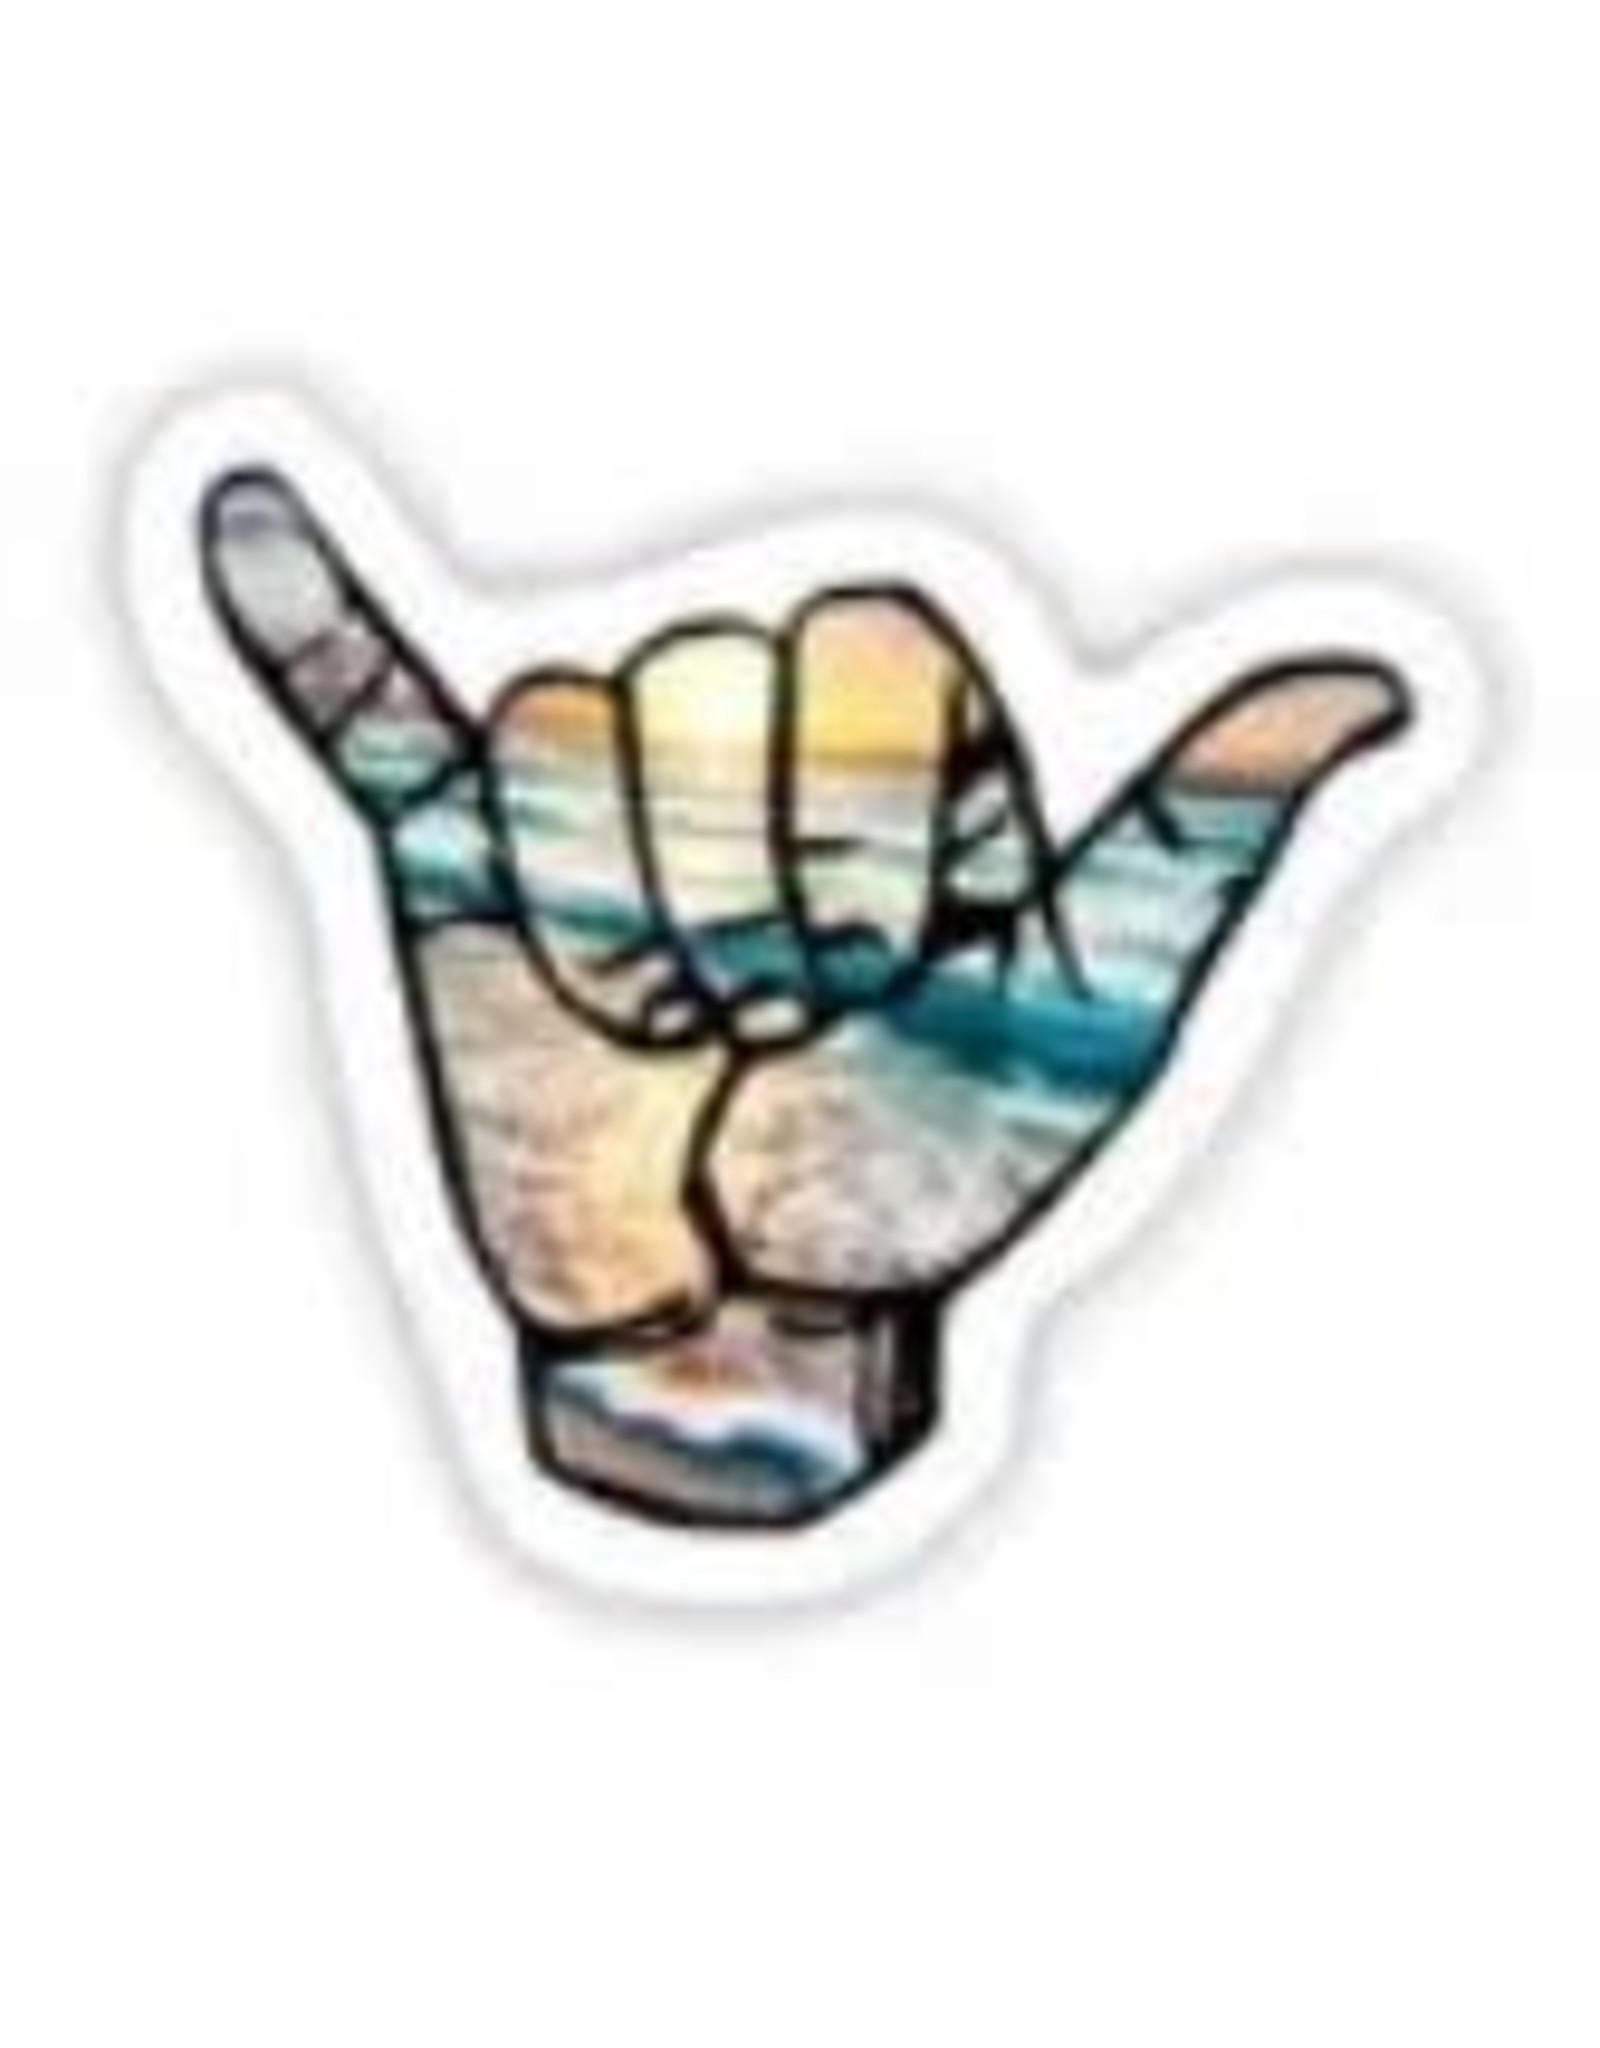 BIG MOODS HANG LOOSE HAND STICKER